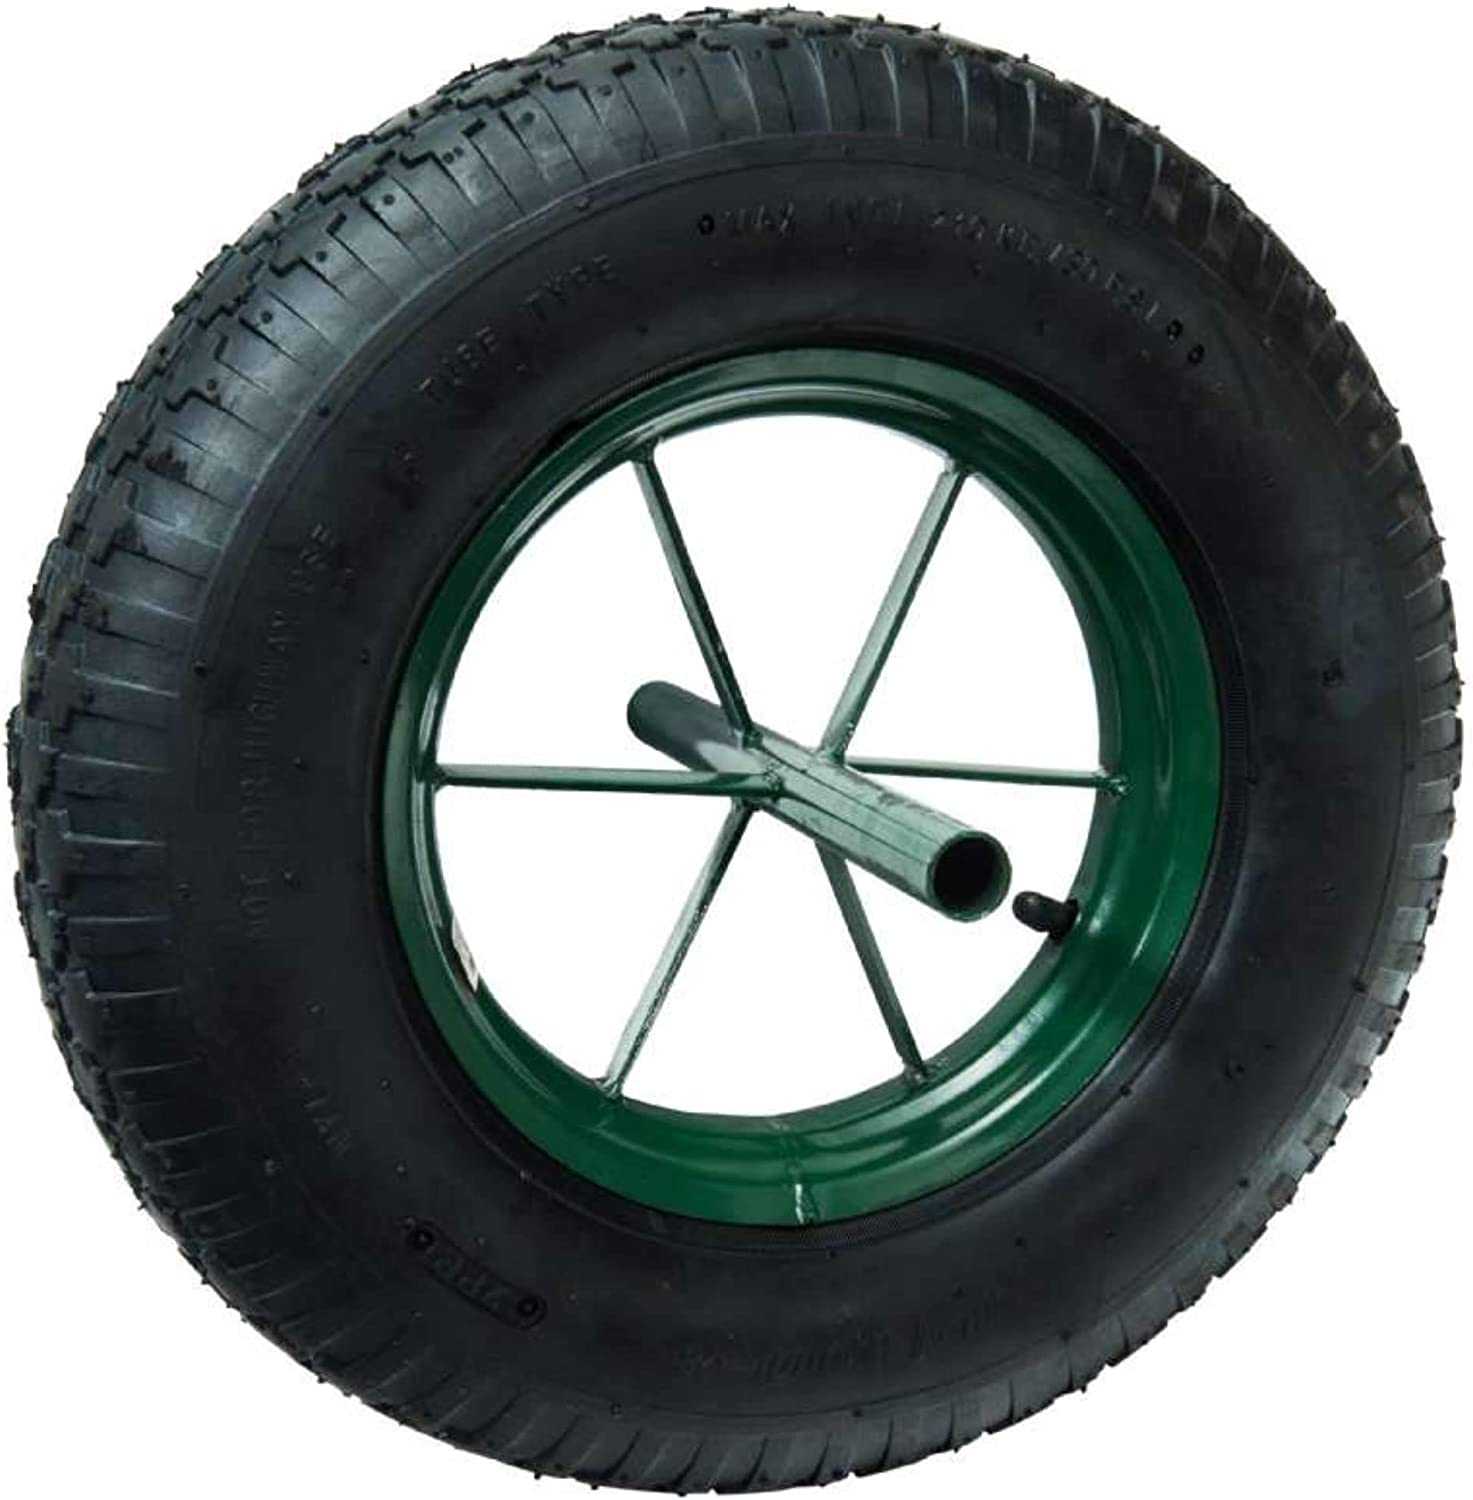 Inflatable In stock Wheel Indianapolis Mall 15 Inches 385 x 20 mm 95 Spindle